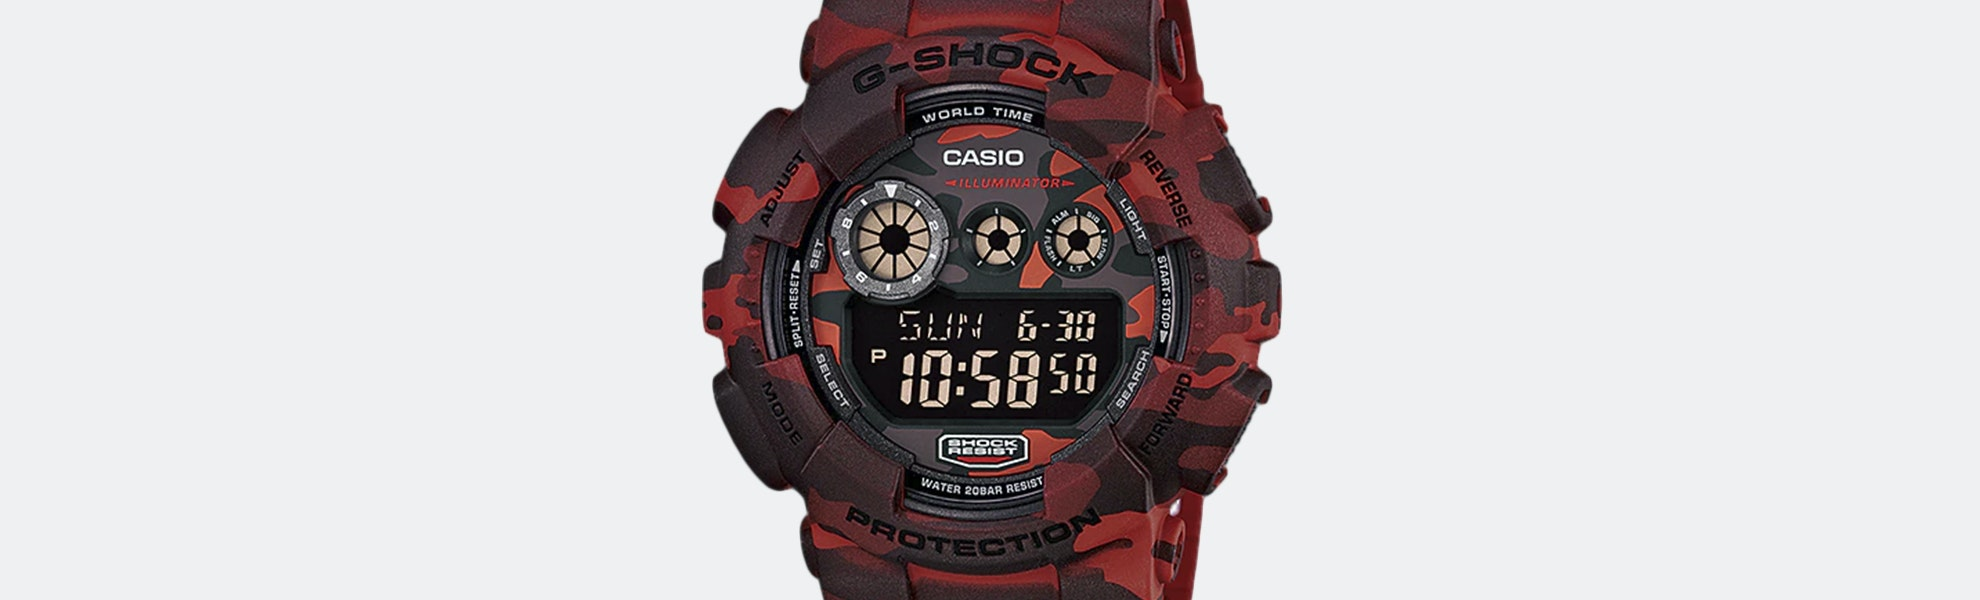 Casio G-Shock GD-120CM Quartz Watch